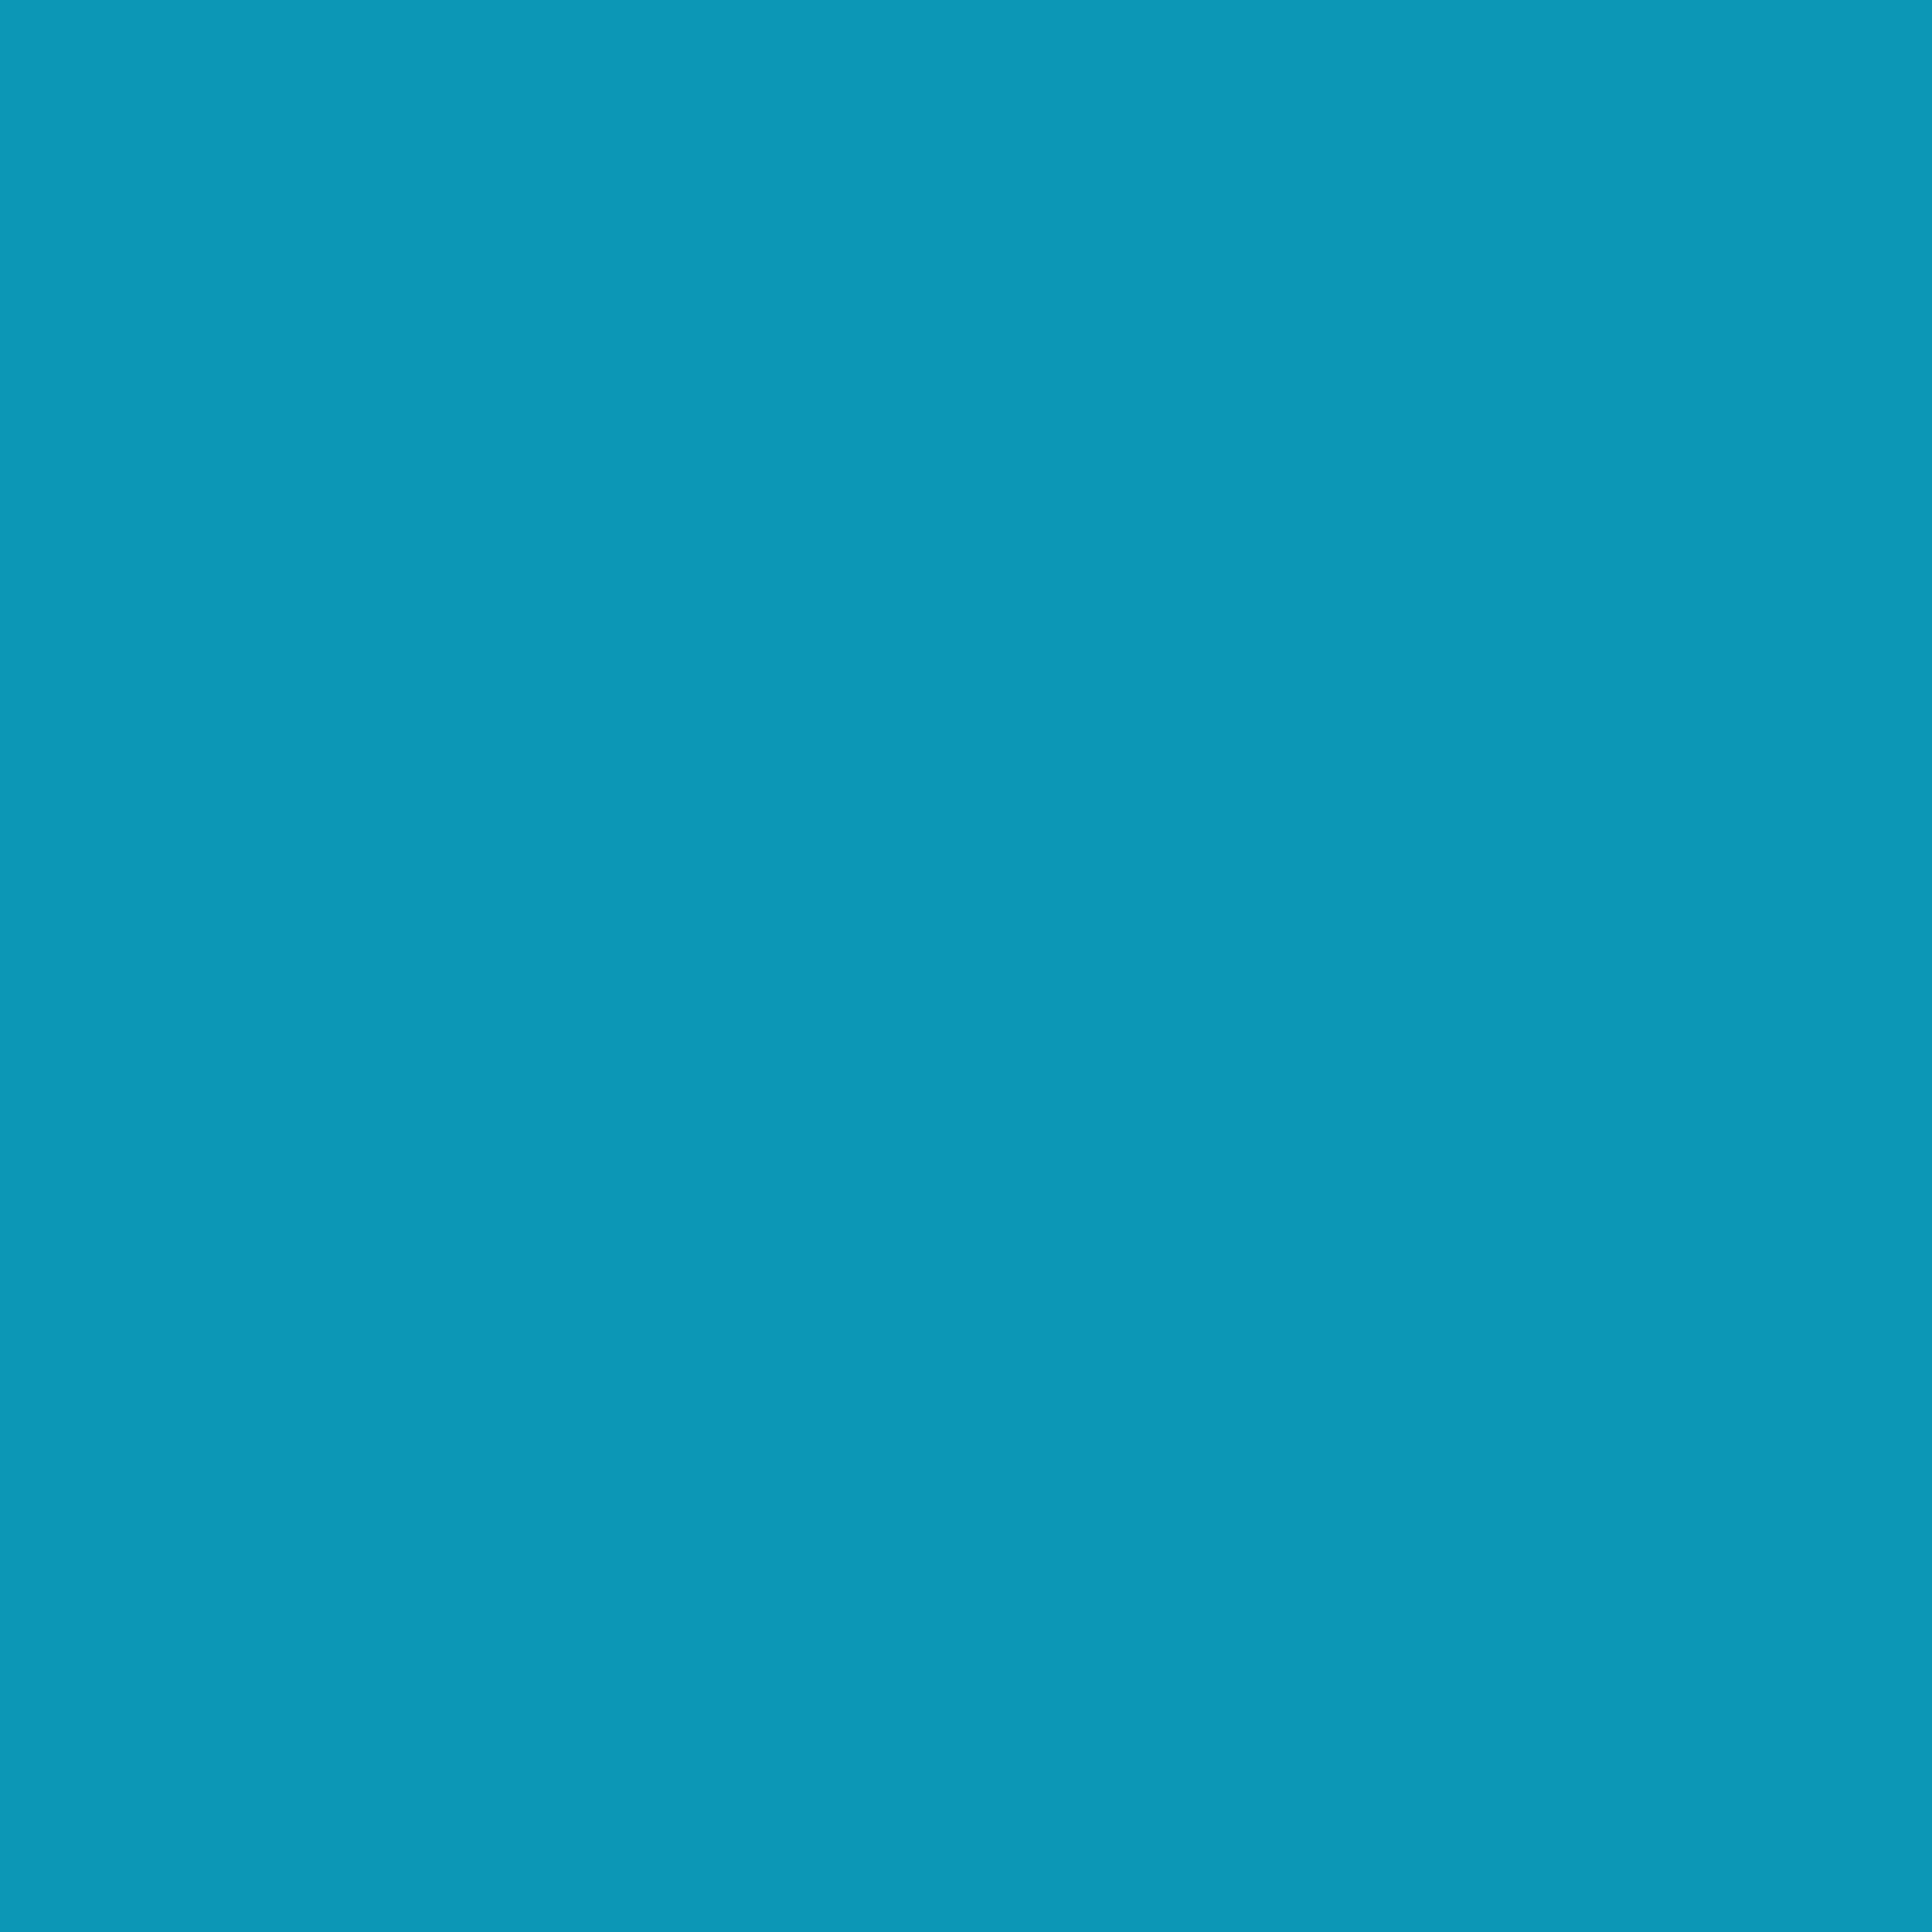 2732x2732 Blue-green Solid Color Background